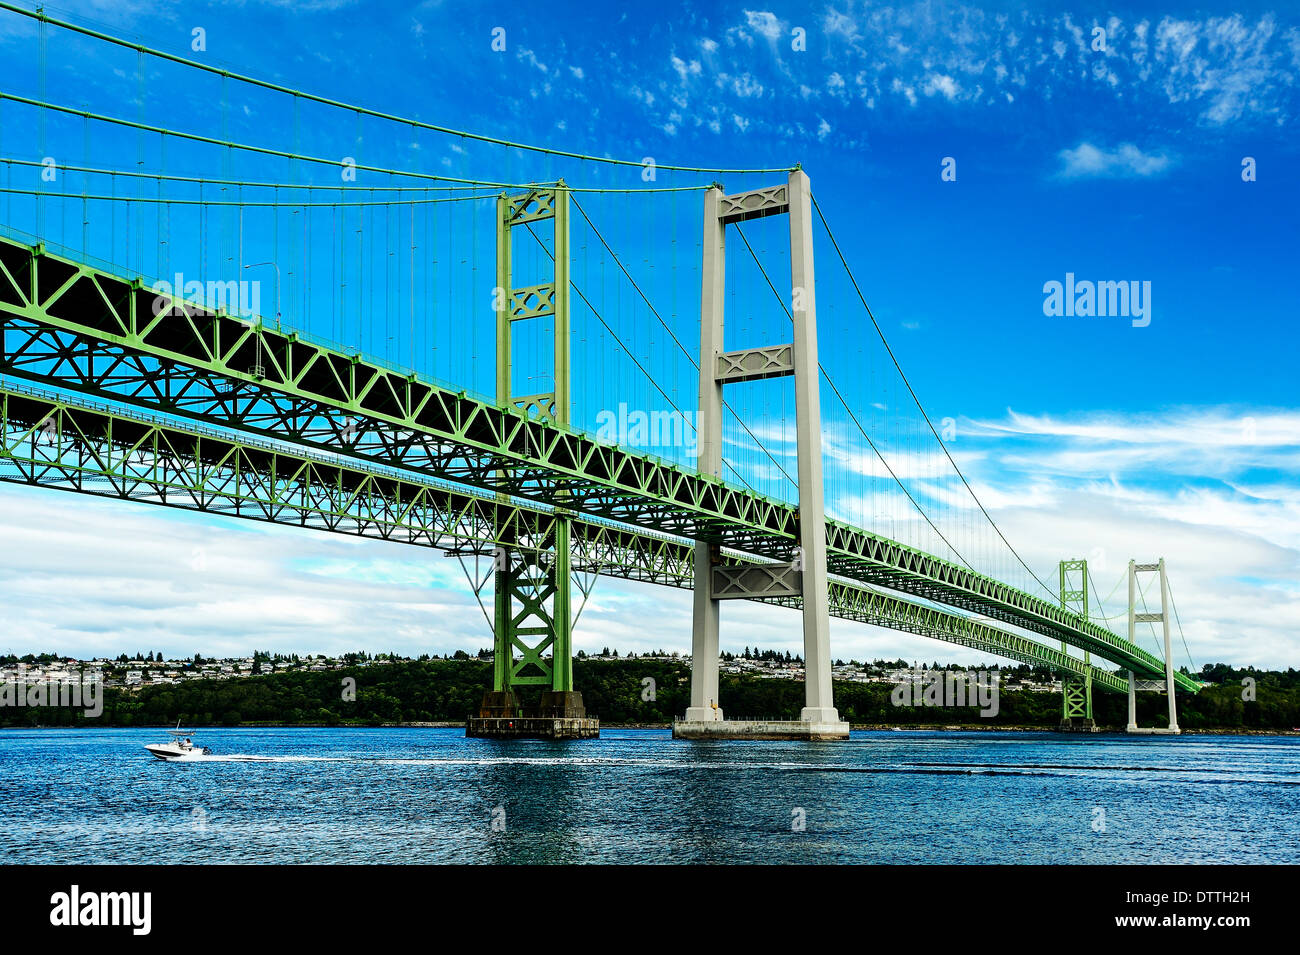 Narrows Bridge, Tacoma, Washington, Stati Uniti Immagini Stock